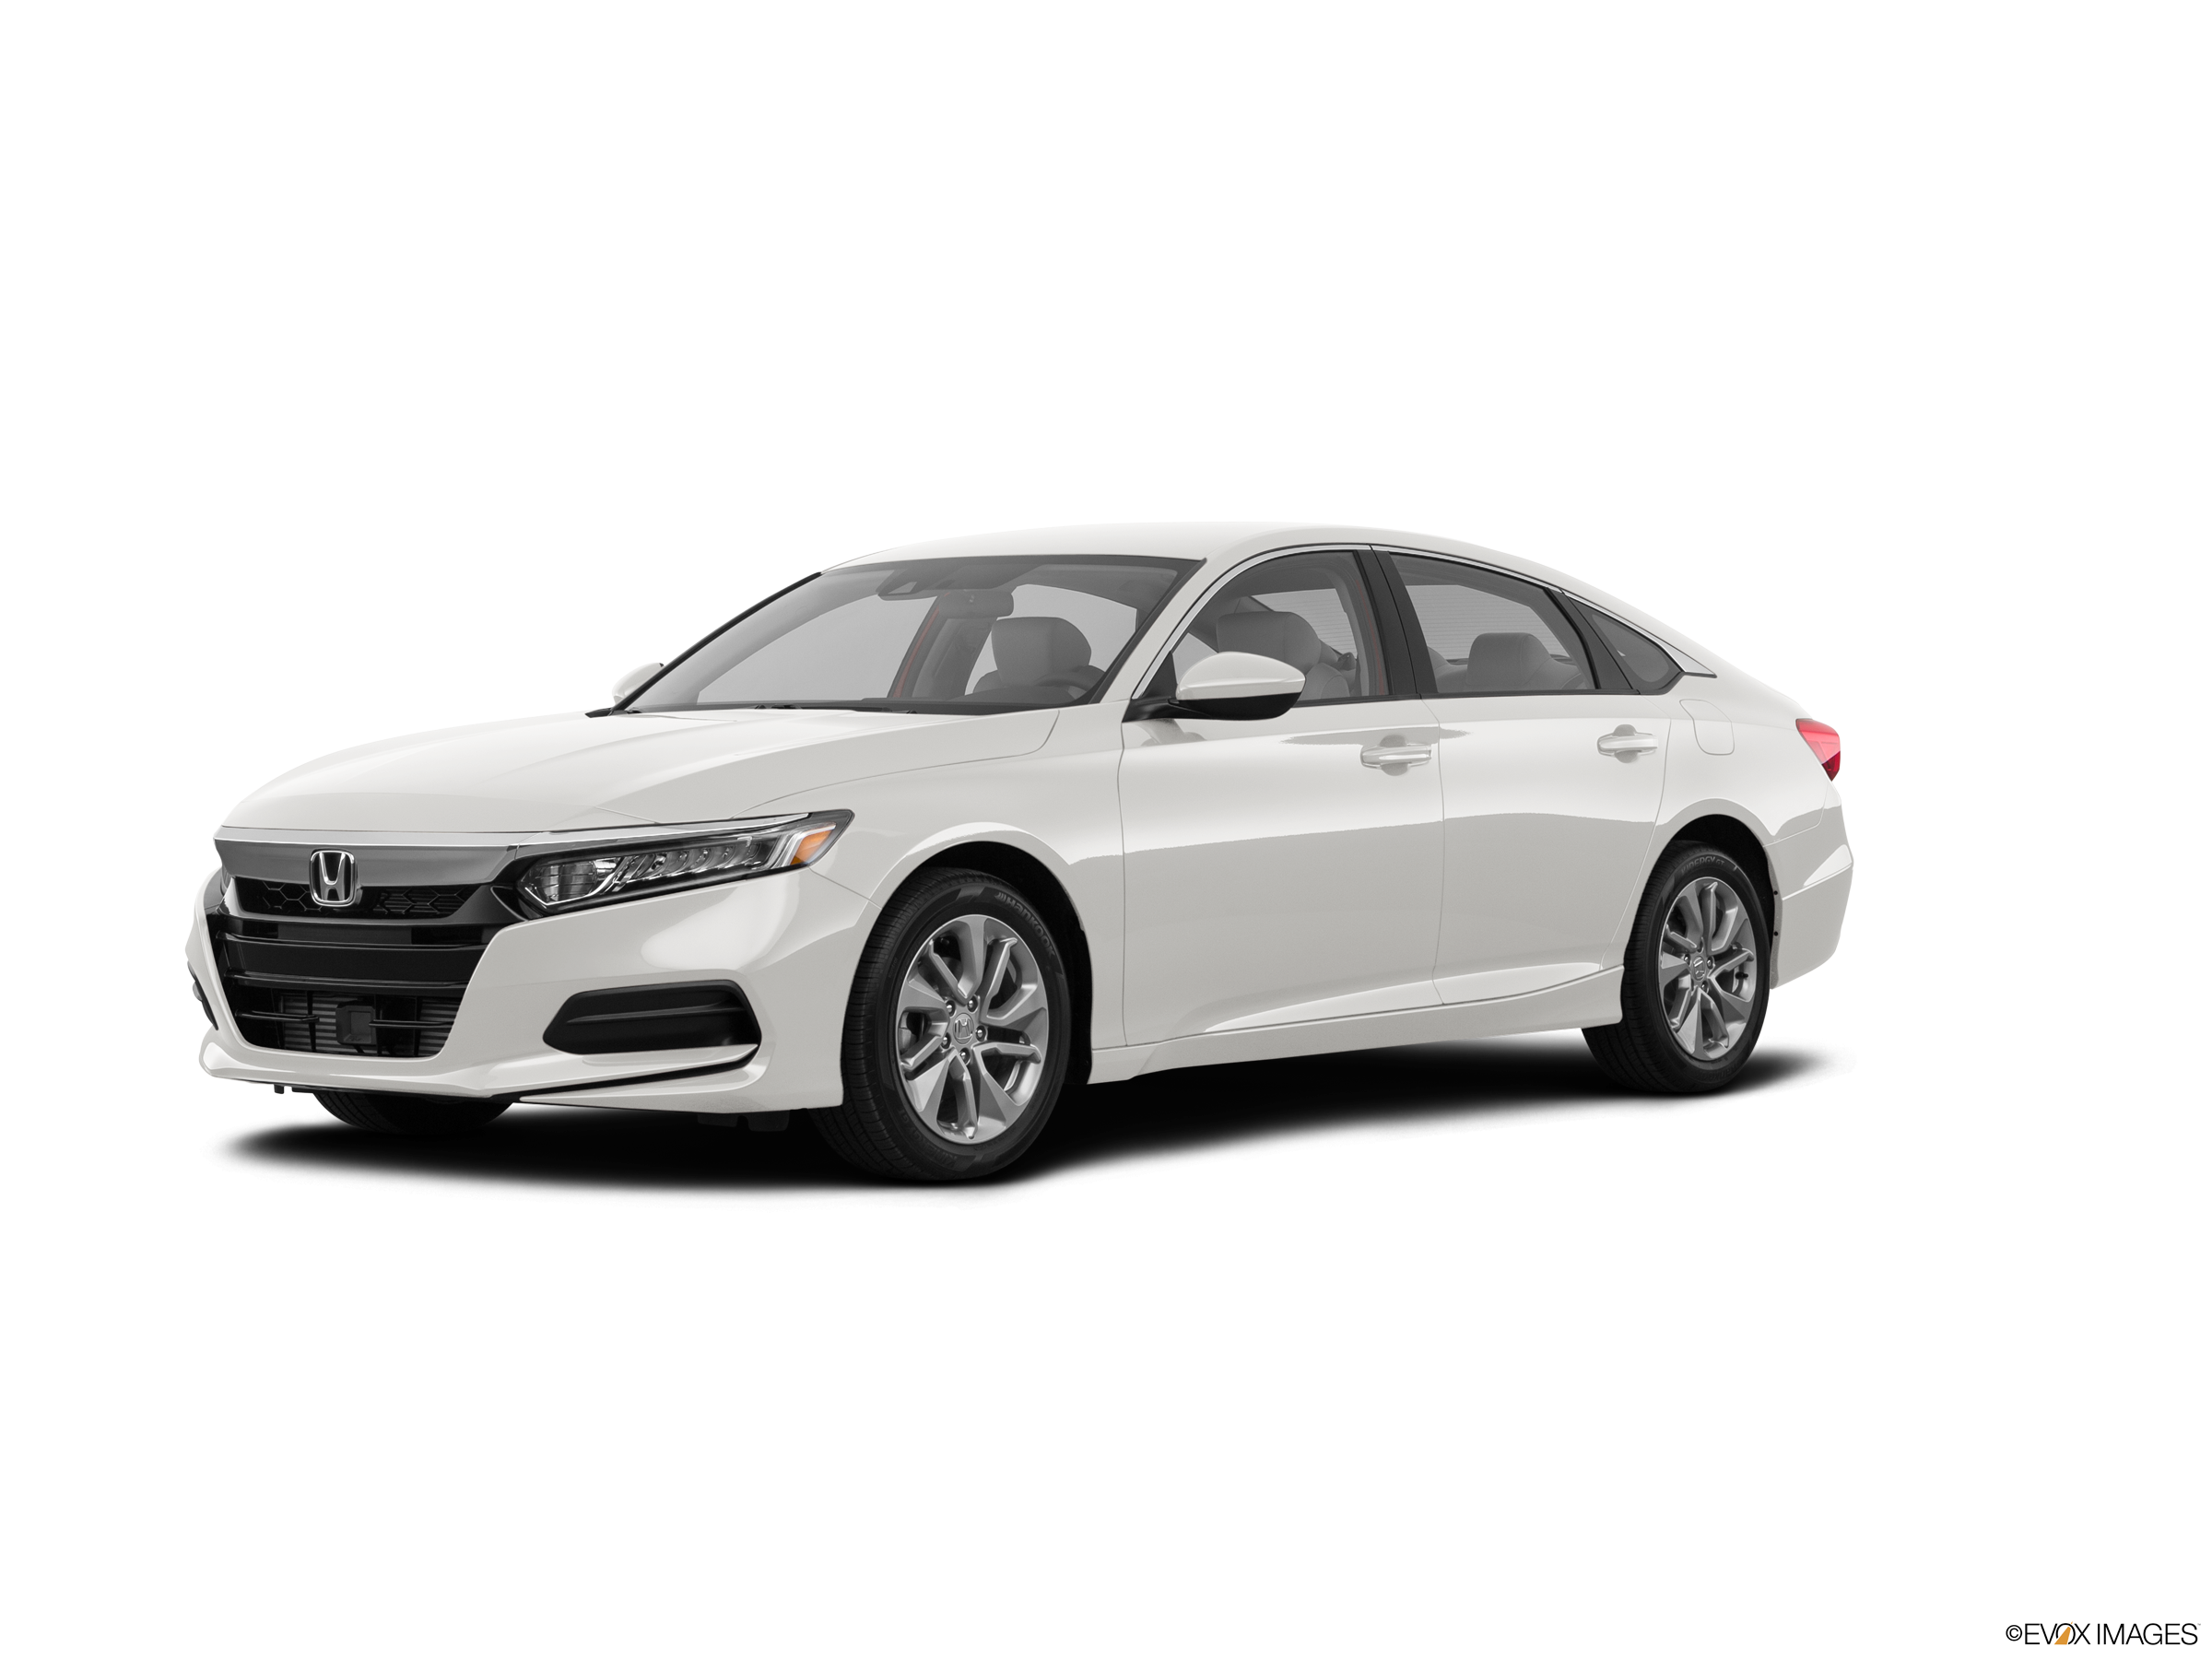 10 Best Sedans Under $25,000 - 2018 Honda Accord